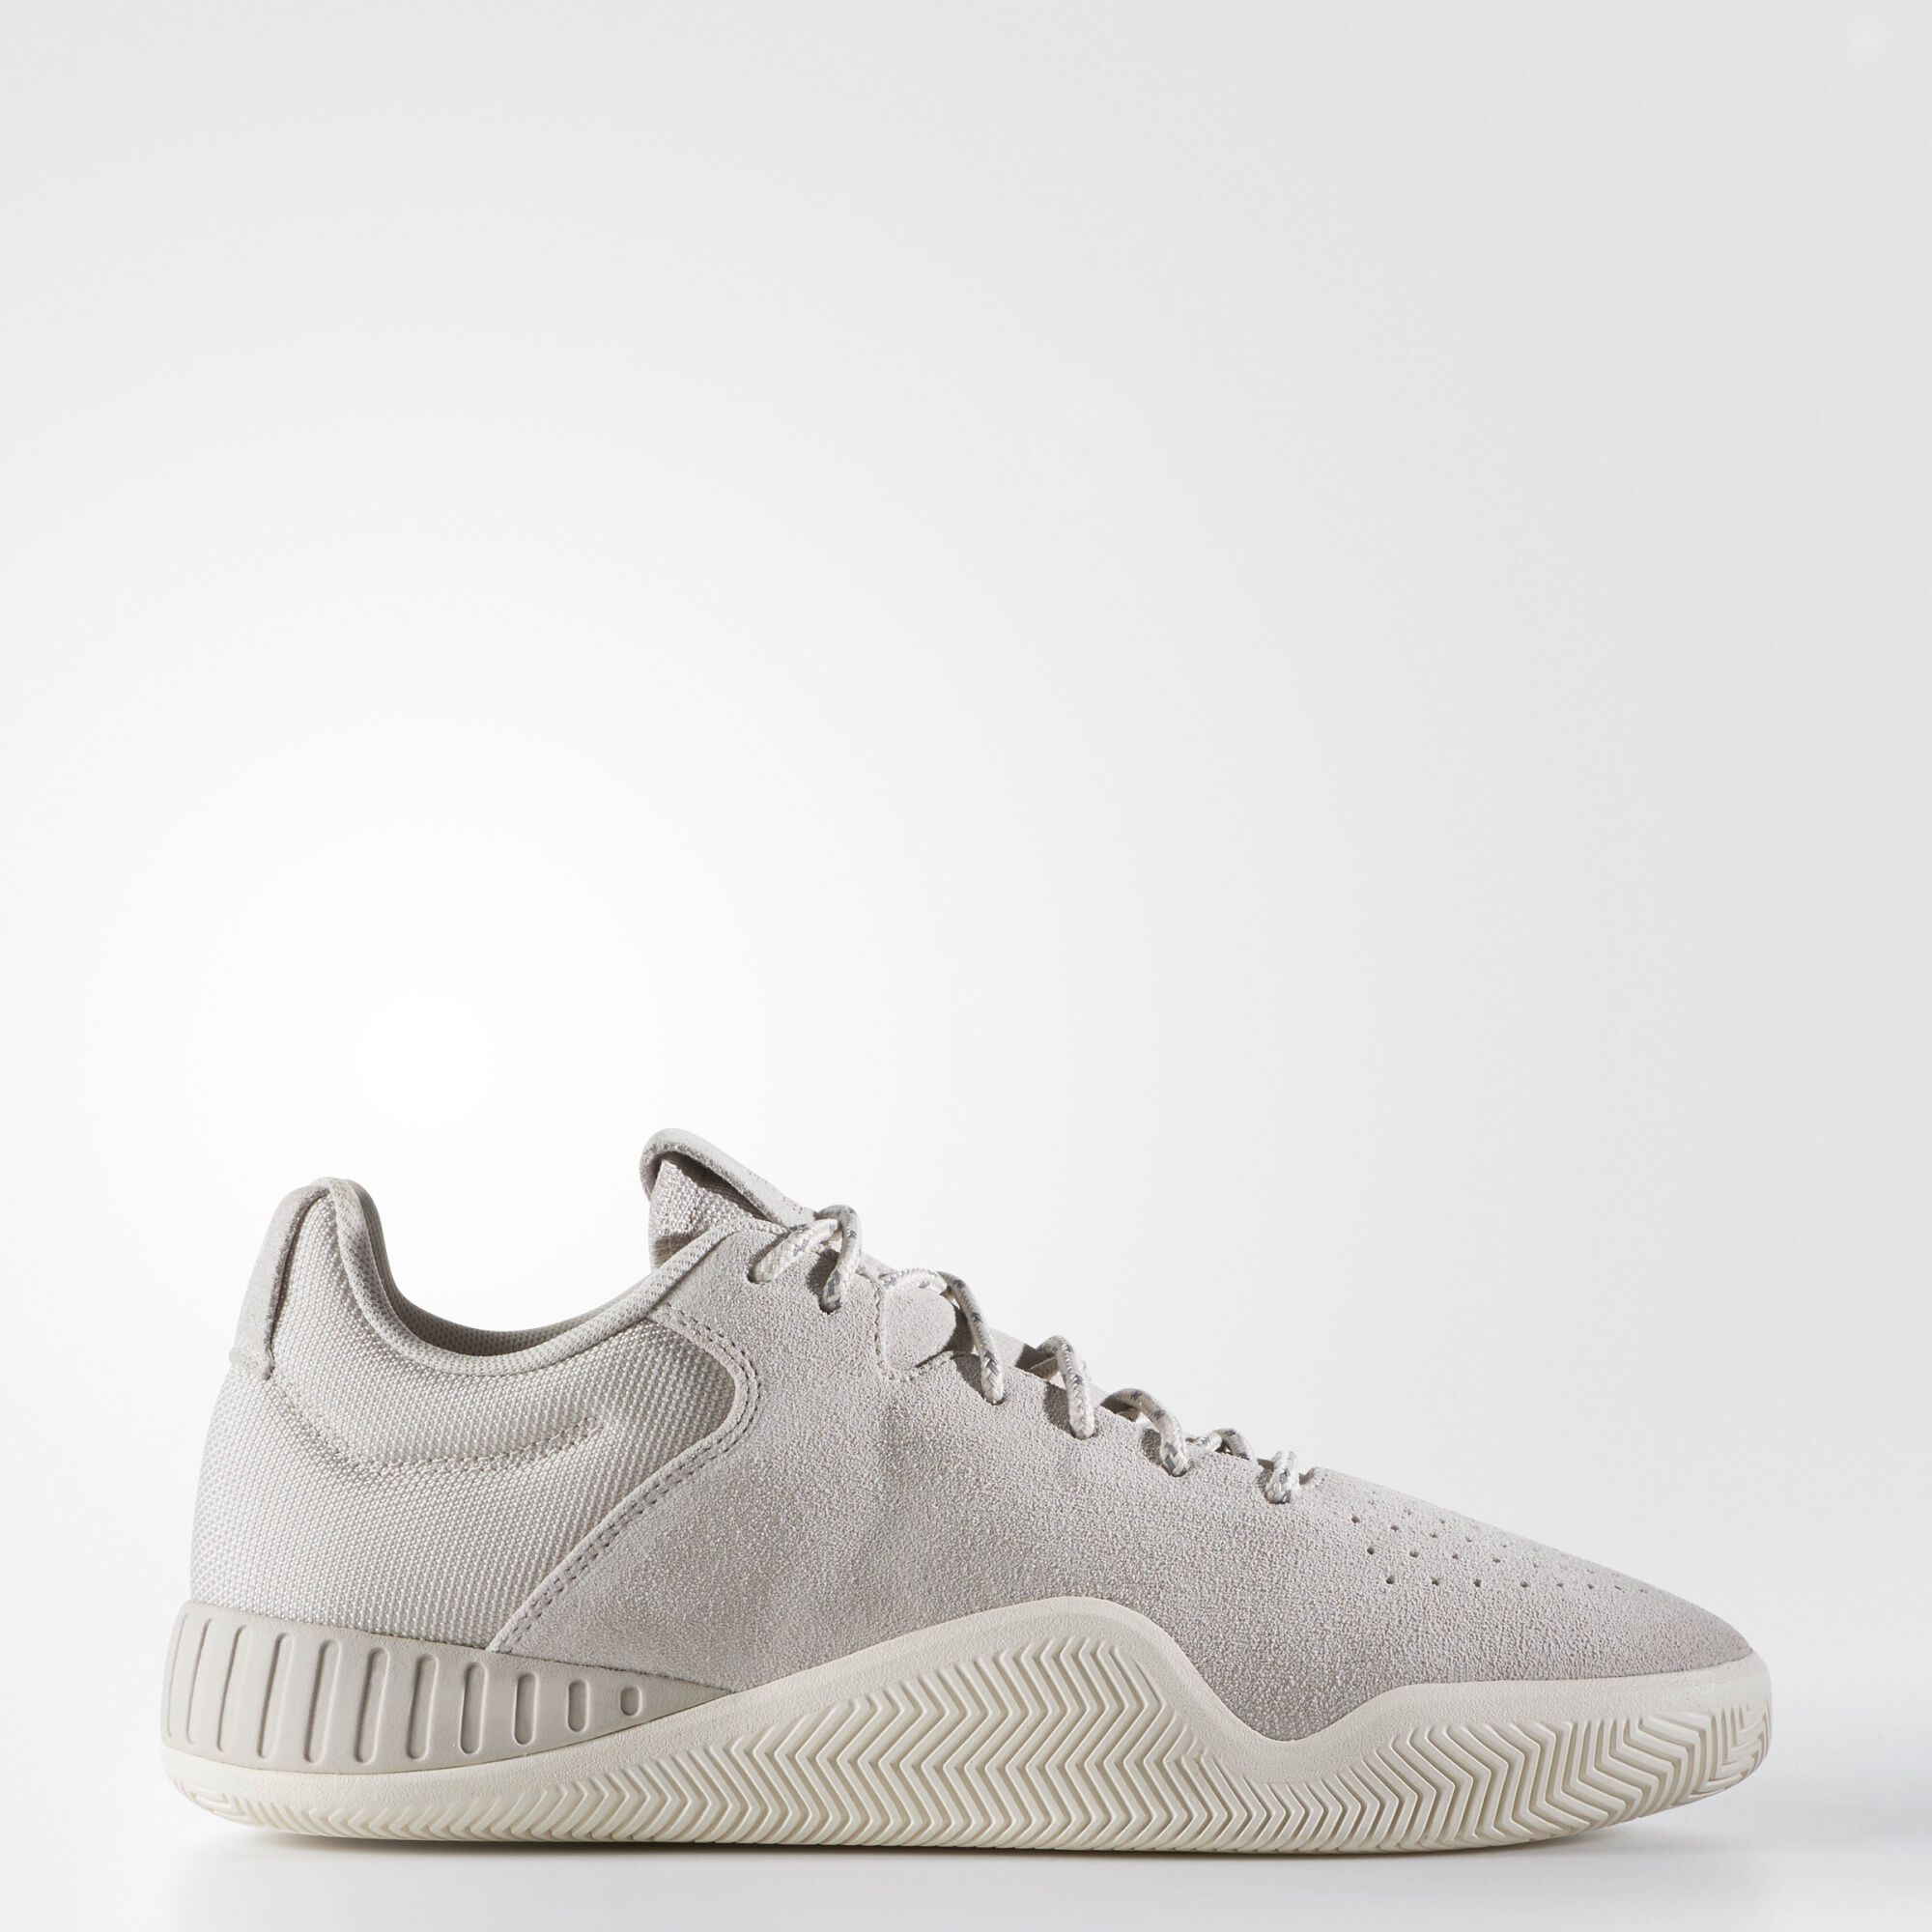 Adidas Originals TUBULAR SHADOW Trainers haze coral / light onix